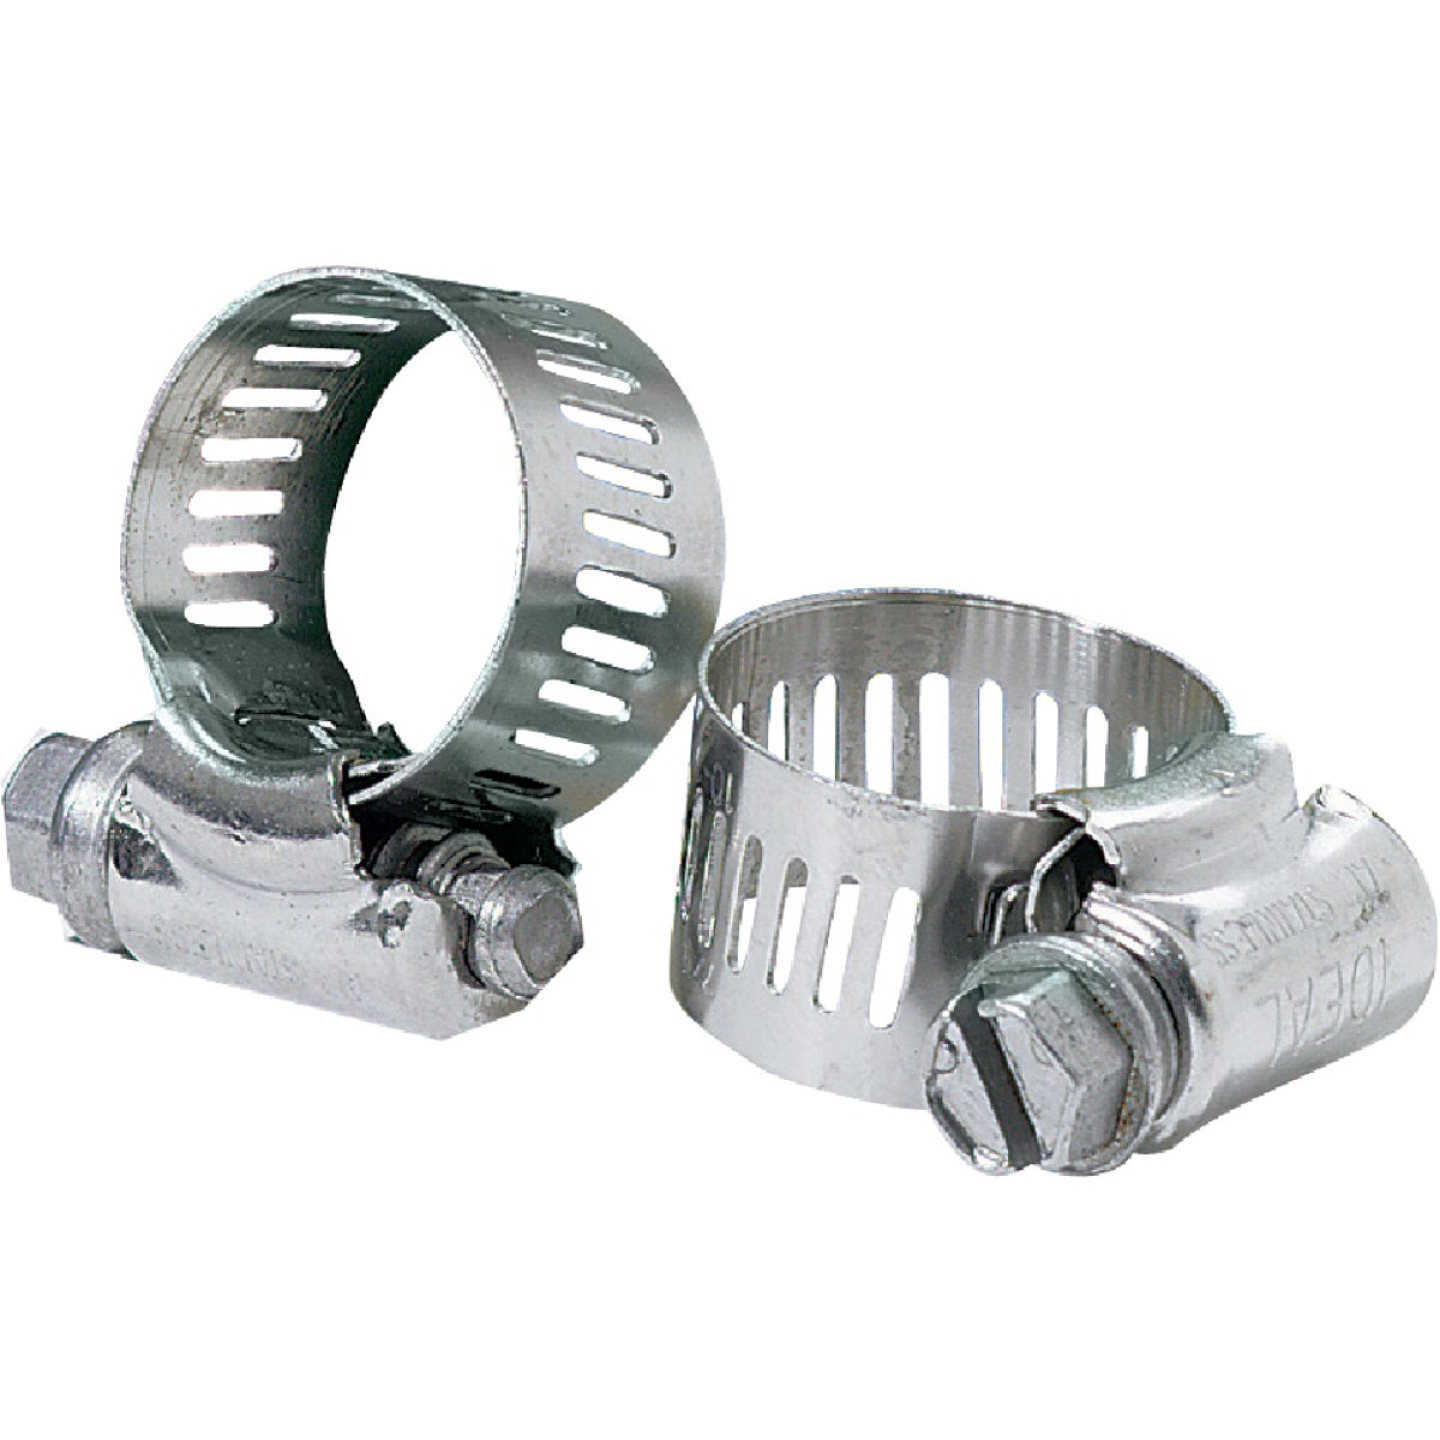 Ideal 2-1/2 In. - 3-1/2 In. 67 All Stainless Steel Hose Clamp Image 1